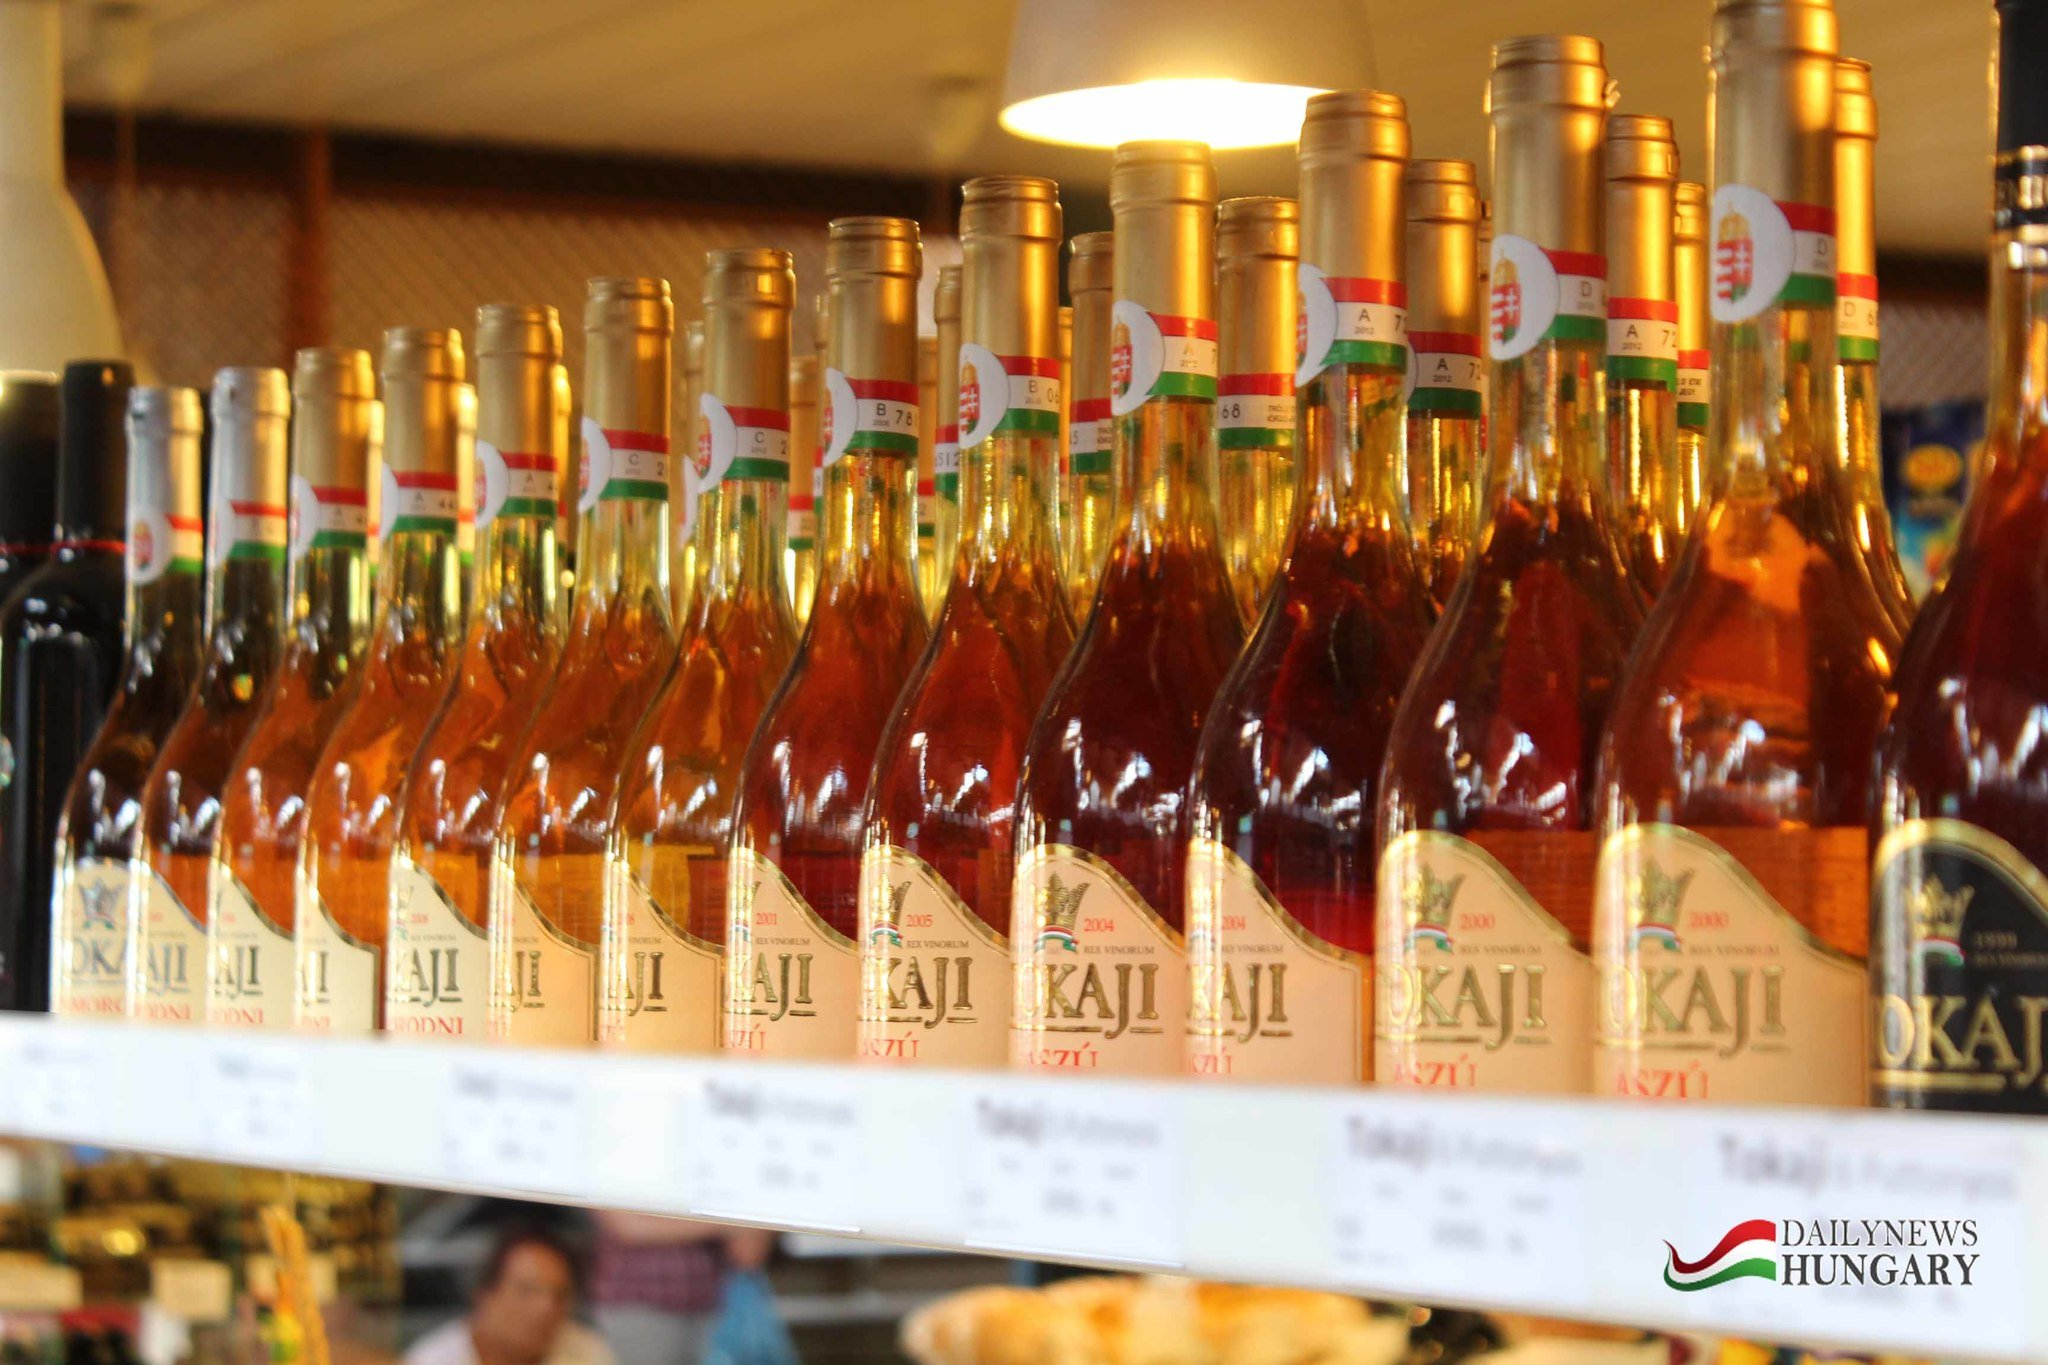 Tokaji Wine Boutique Restaurant opened in Toronto